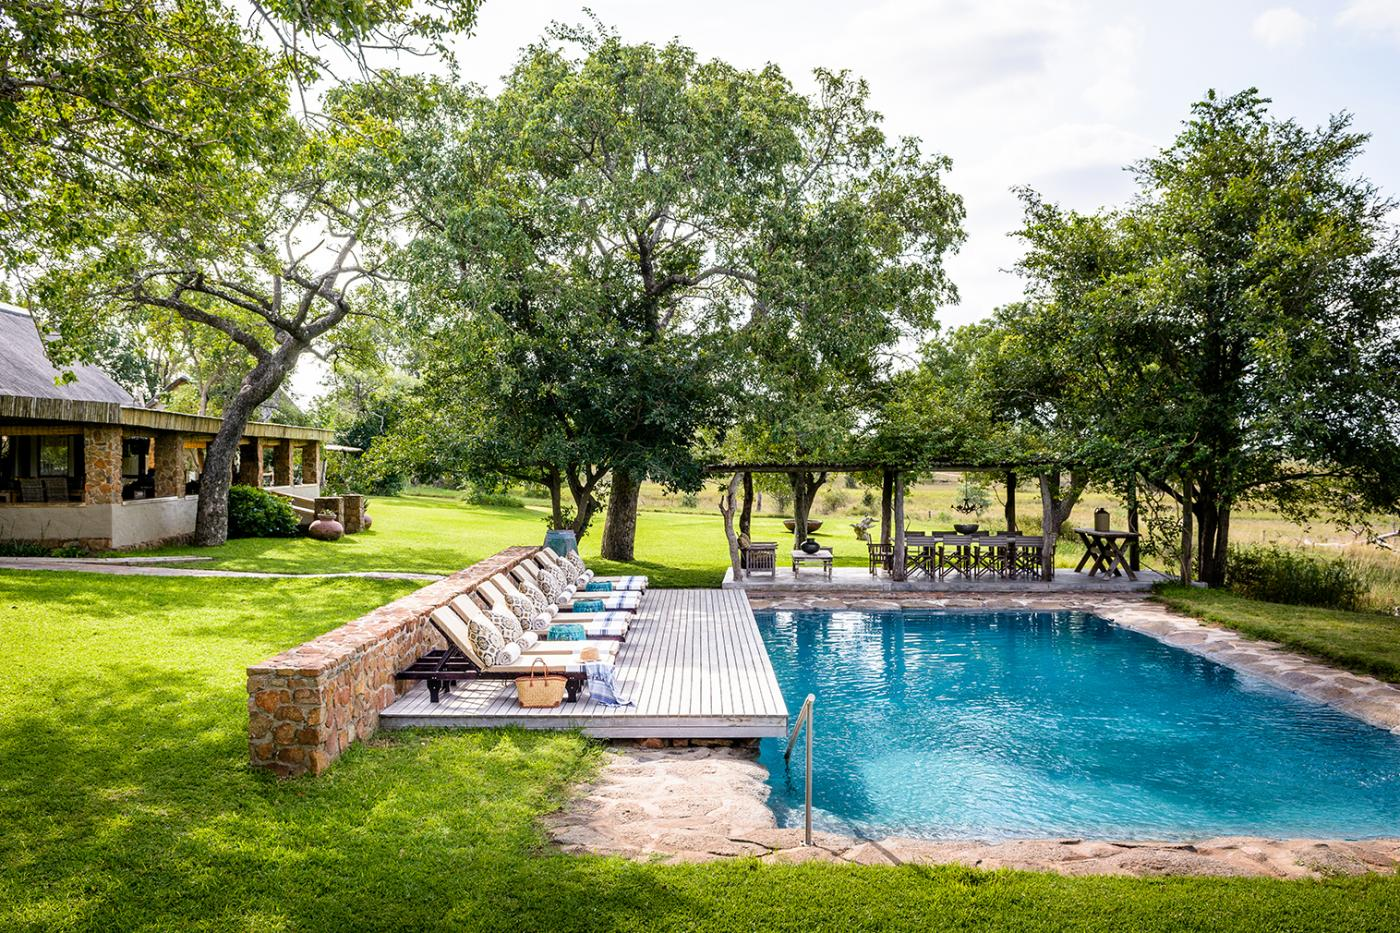 If you are planning an amazing birthday pool party, Singita Castleton in South Africa is the place to go.